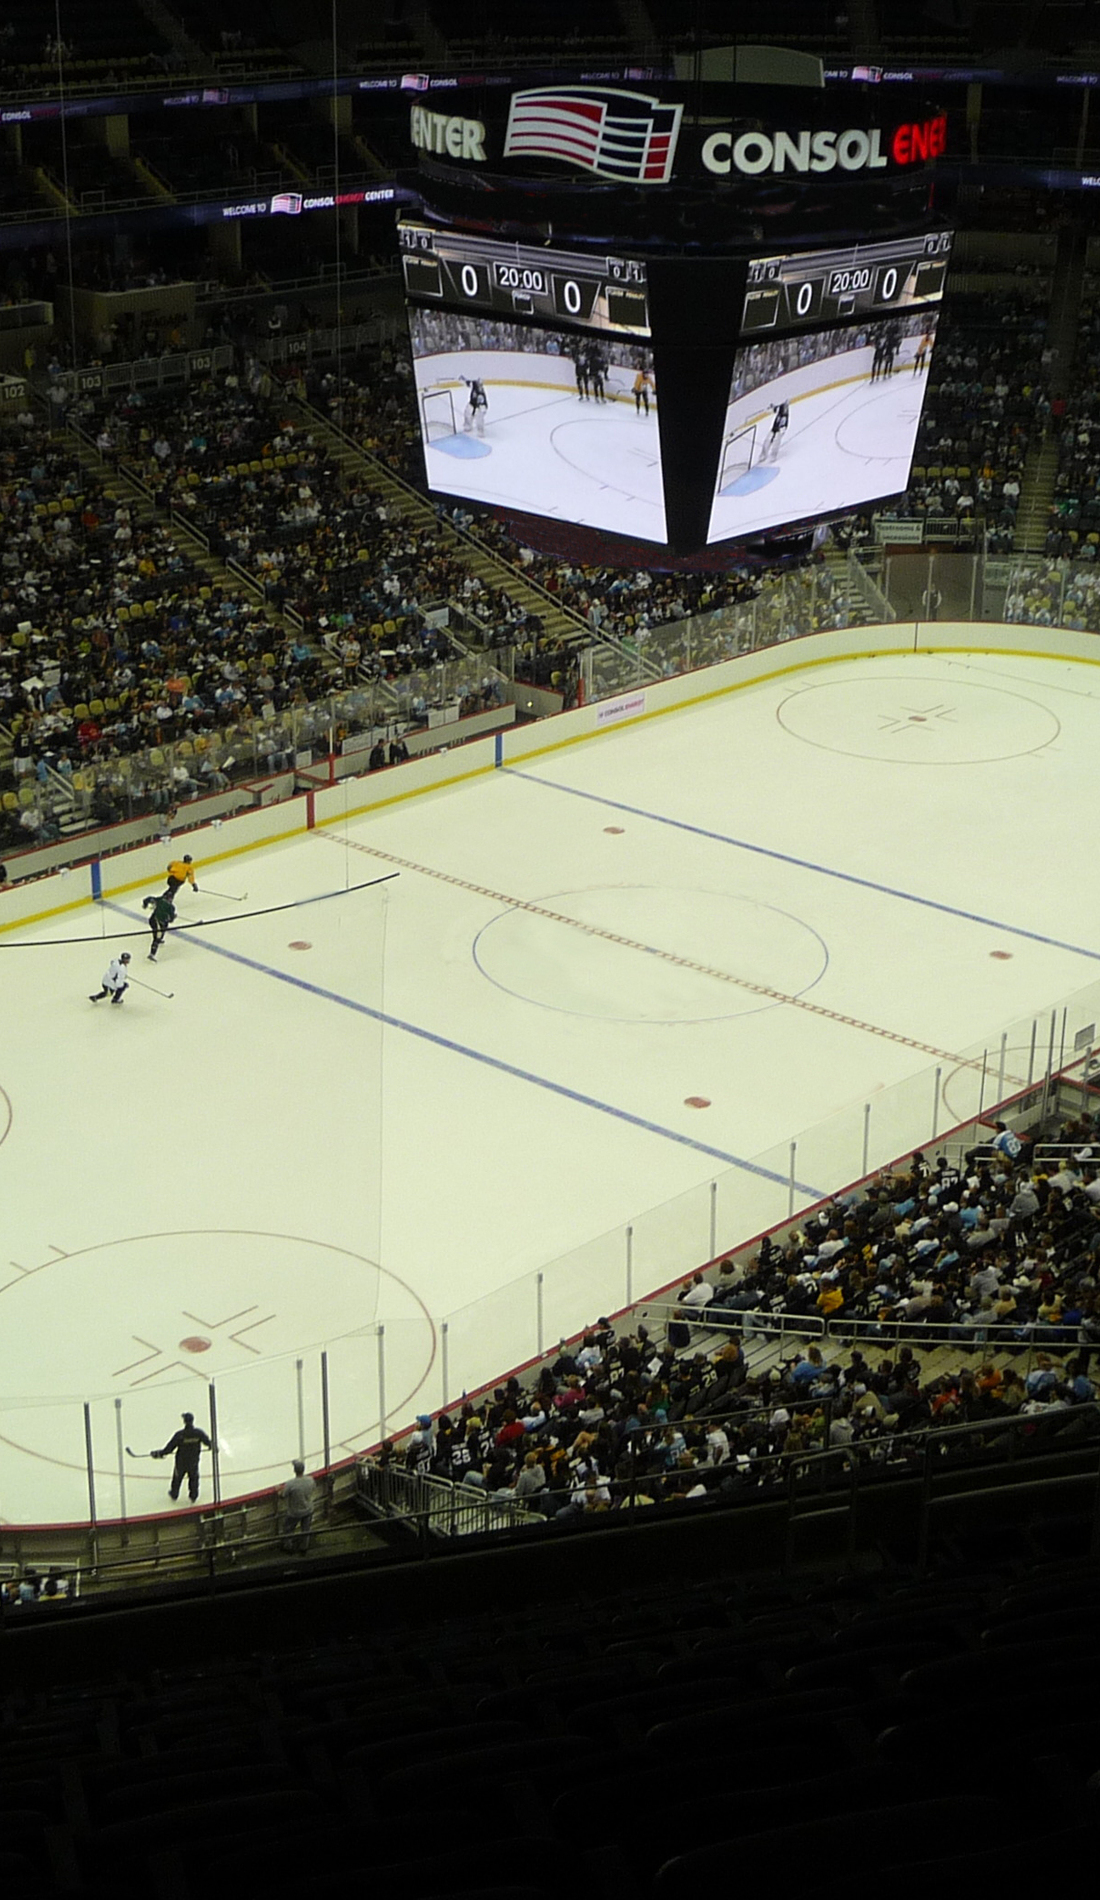 A Pittsburgh Penguins live event